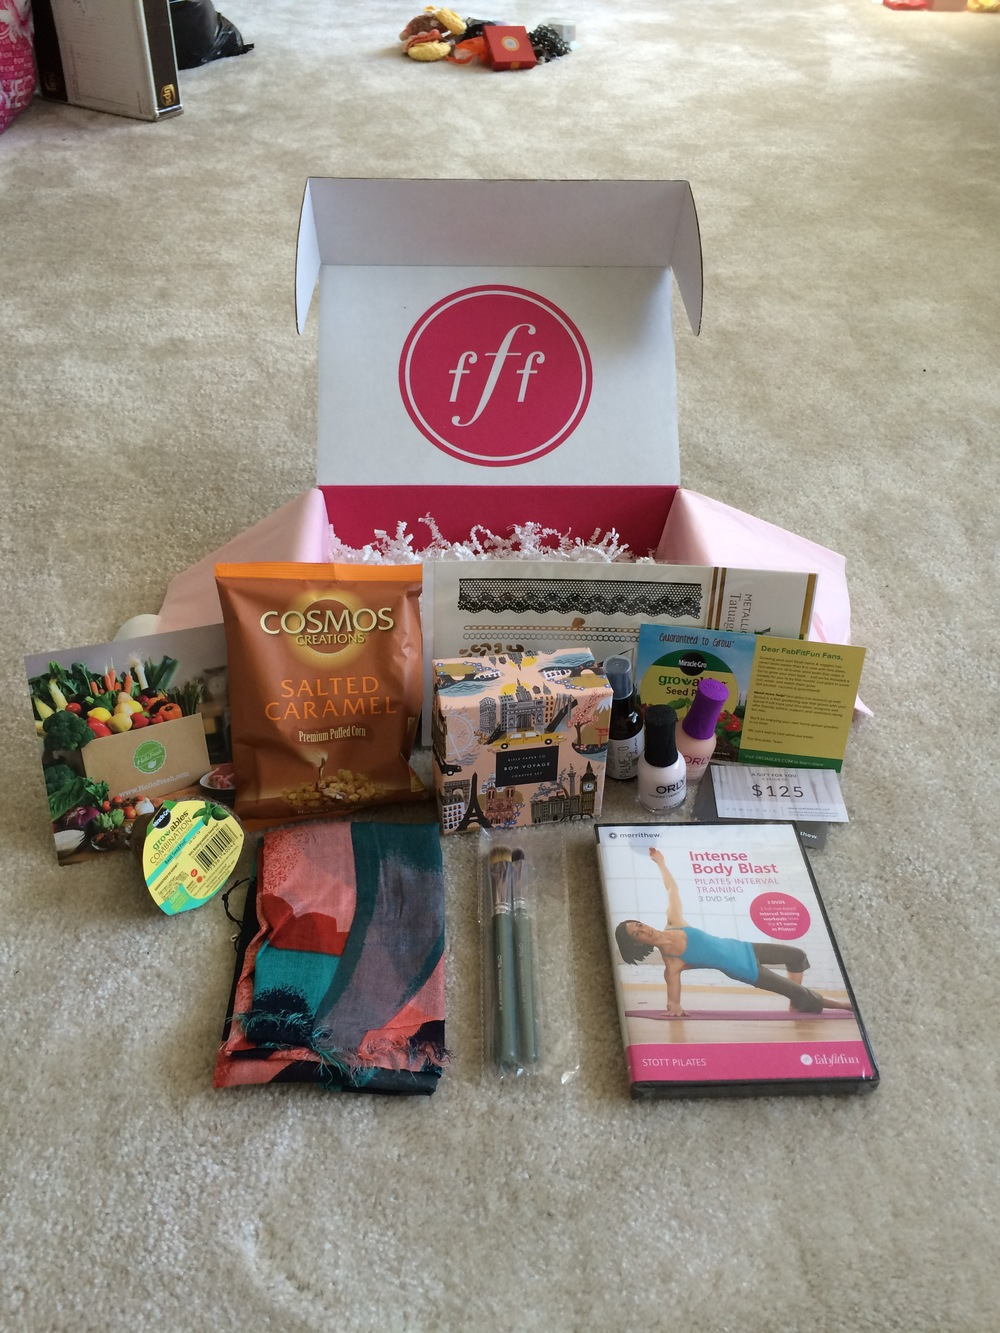 fabfitfun_candy_washington.JPG